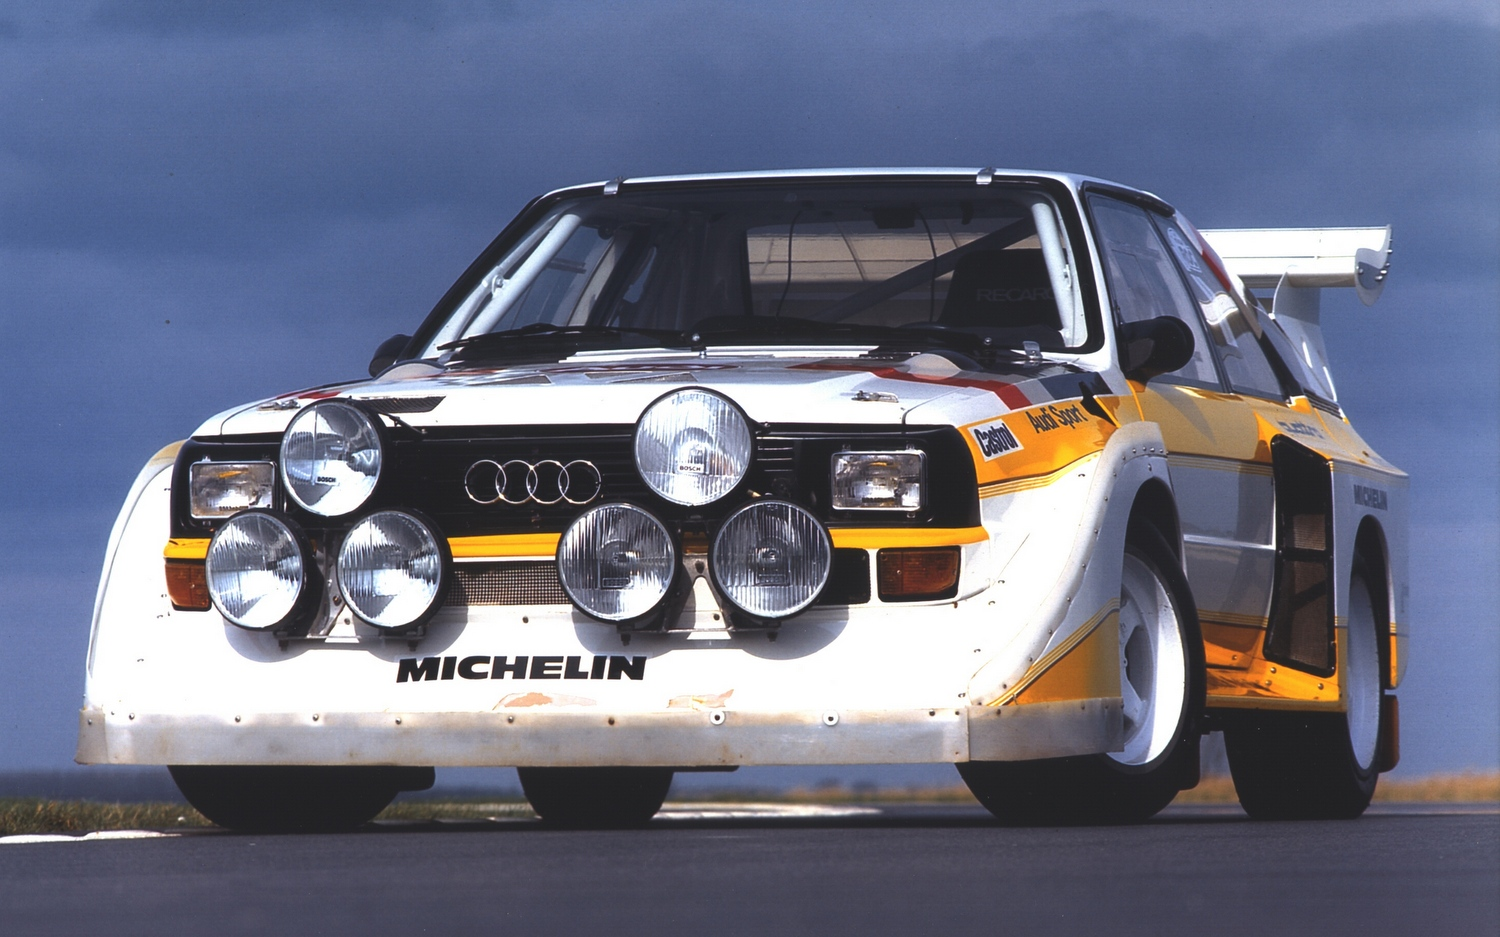 The S1 E2 was the ultimate Quattro, a be-winged monster that allowed Audi to snatch a final Group B win